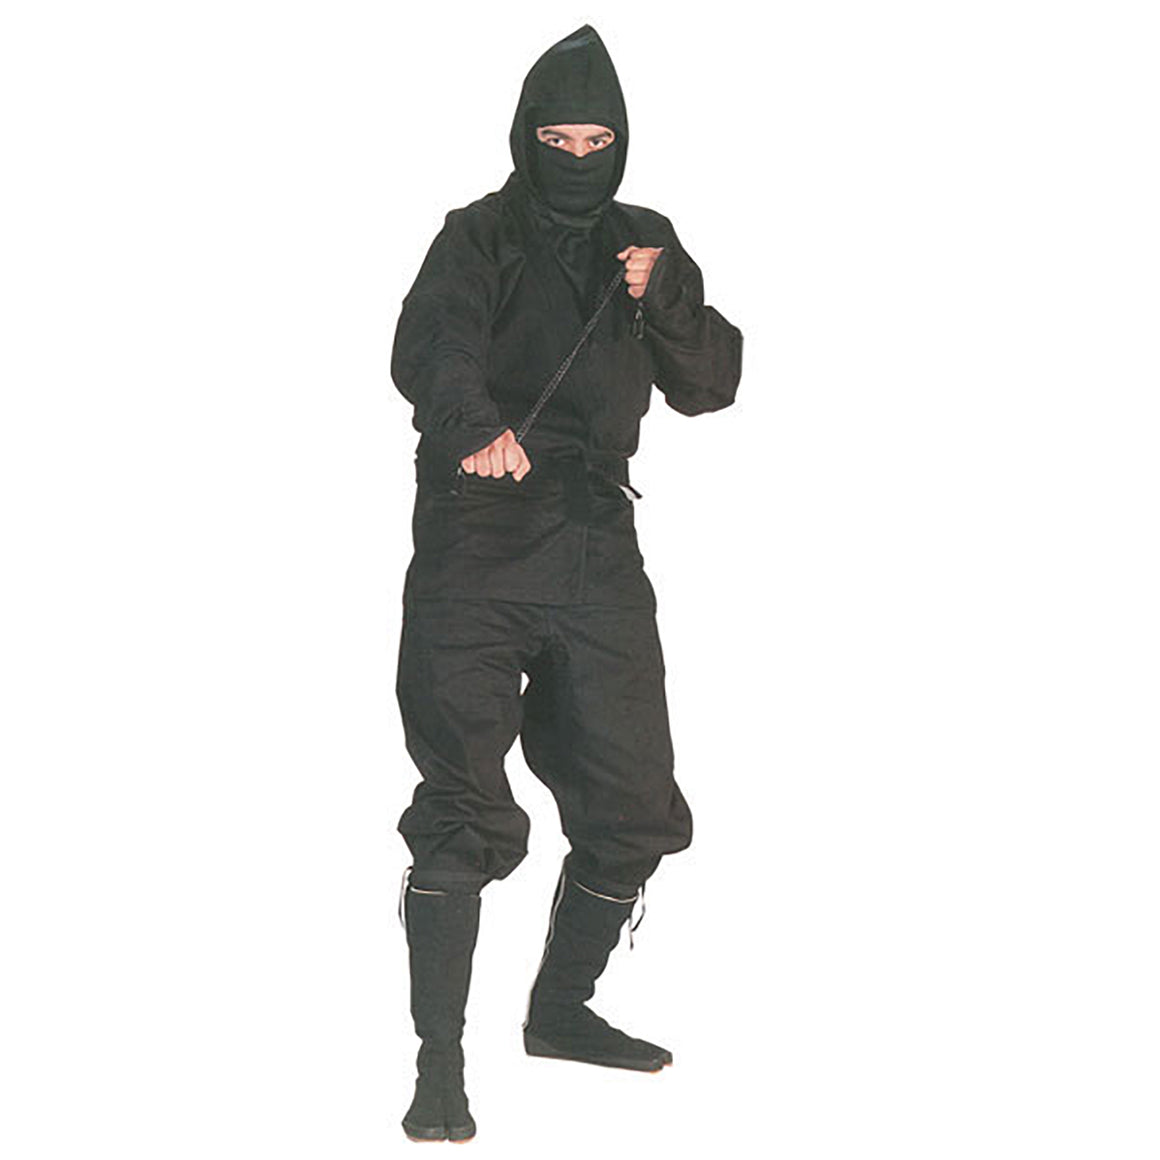 201XL-BLK Ninja Uniform